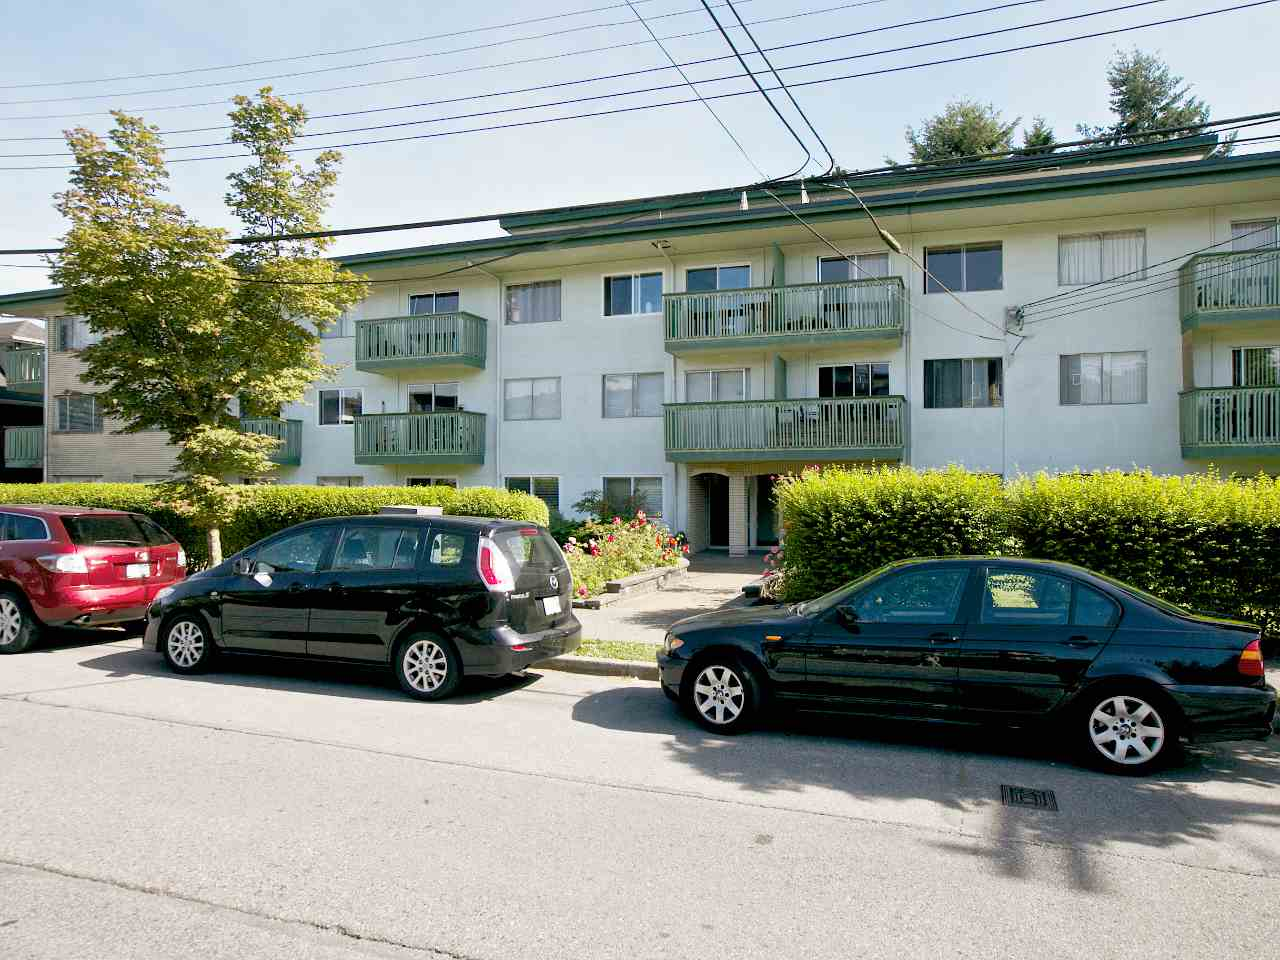 "Main Photo: 213 36 E 14TH Avenue in Vancouver: Mount Pleasant VE Condo for sale in ""Rosemont Manor"" (Vancouver East)  : MLS® # R2003985"